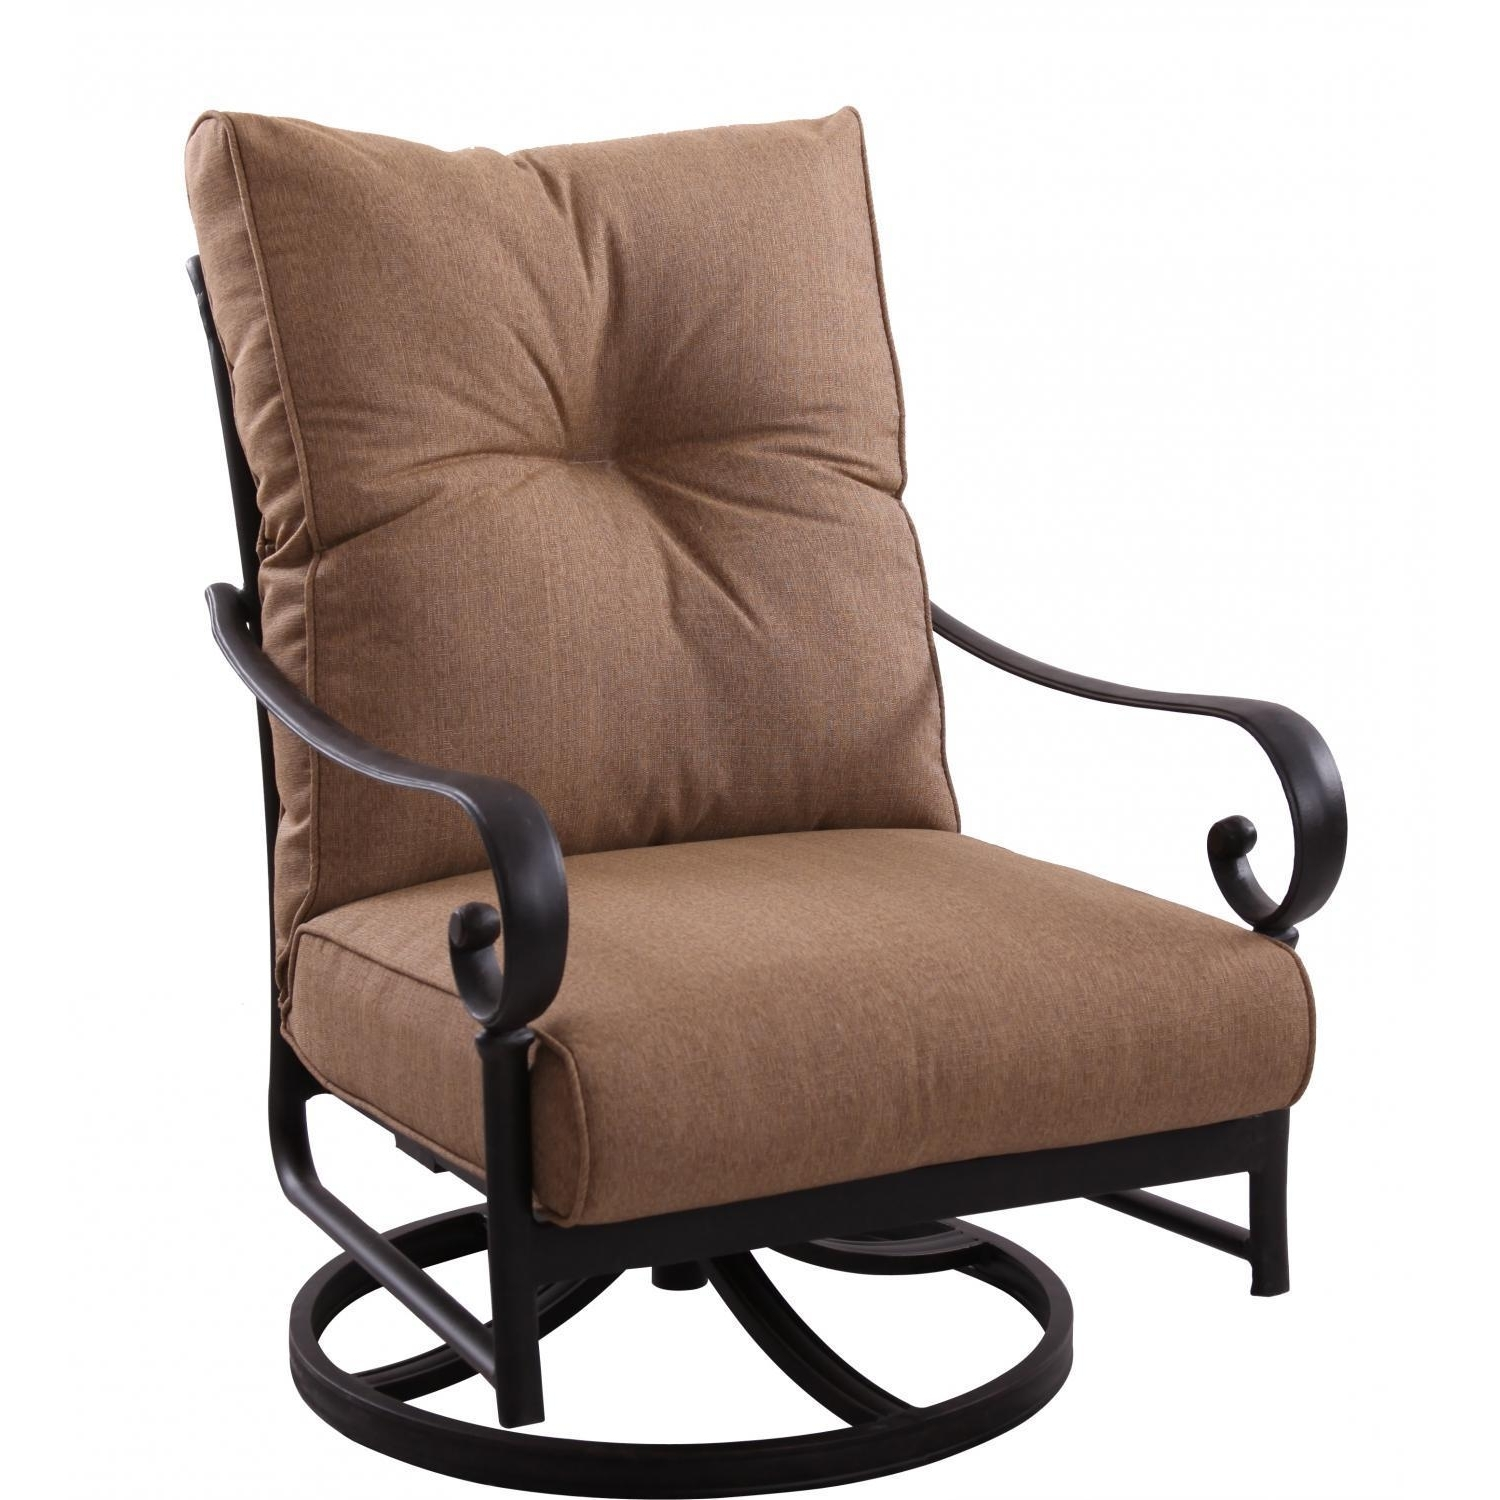 Darlee Santa Anita Cast Aluminum Patio Swivel Rocker Club Chair Intended For Newest Rocking Chairs For Patio (View 7 of 20)